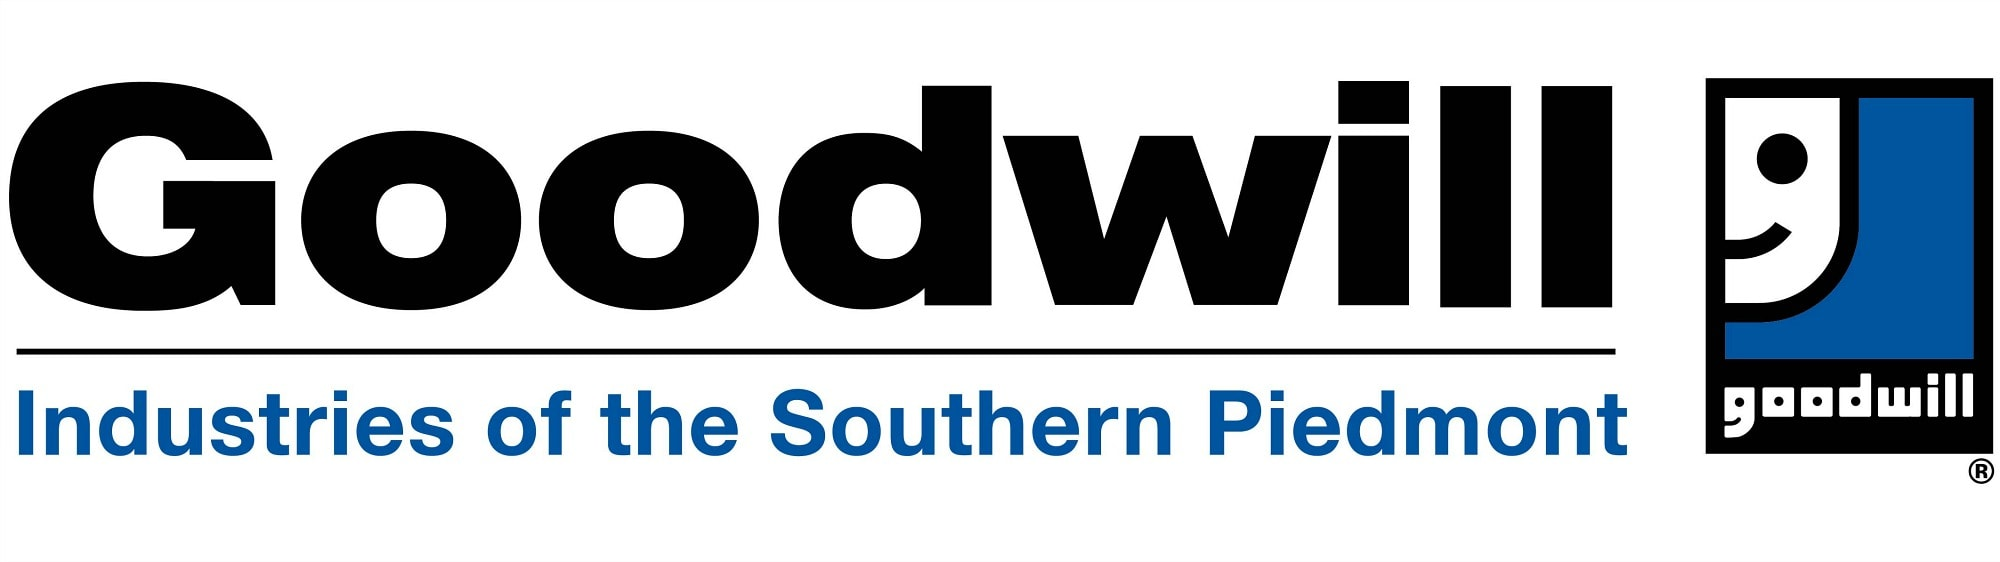 Goodwill Industries of the Southern Piedmont